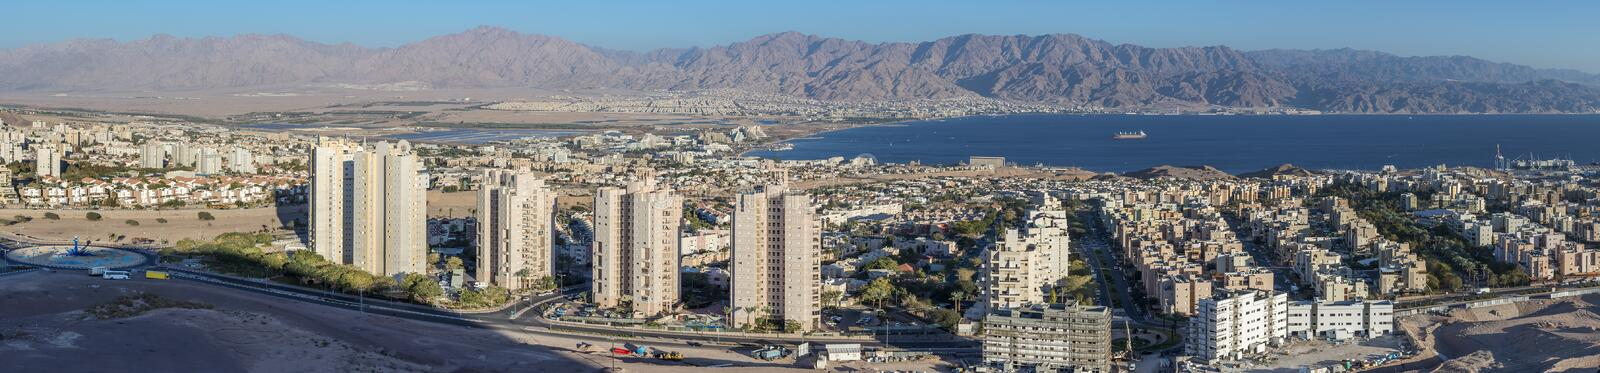 Panoramic view on Eilat city and Aqaba gulf. Eilat is a famous resort city in Israel royalty free stock images